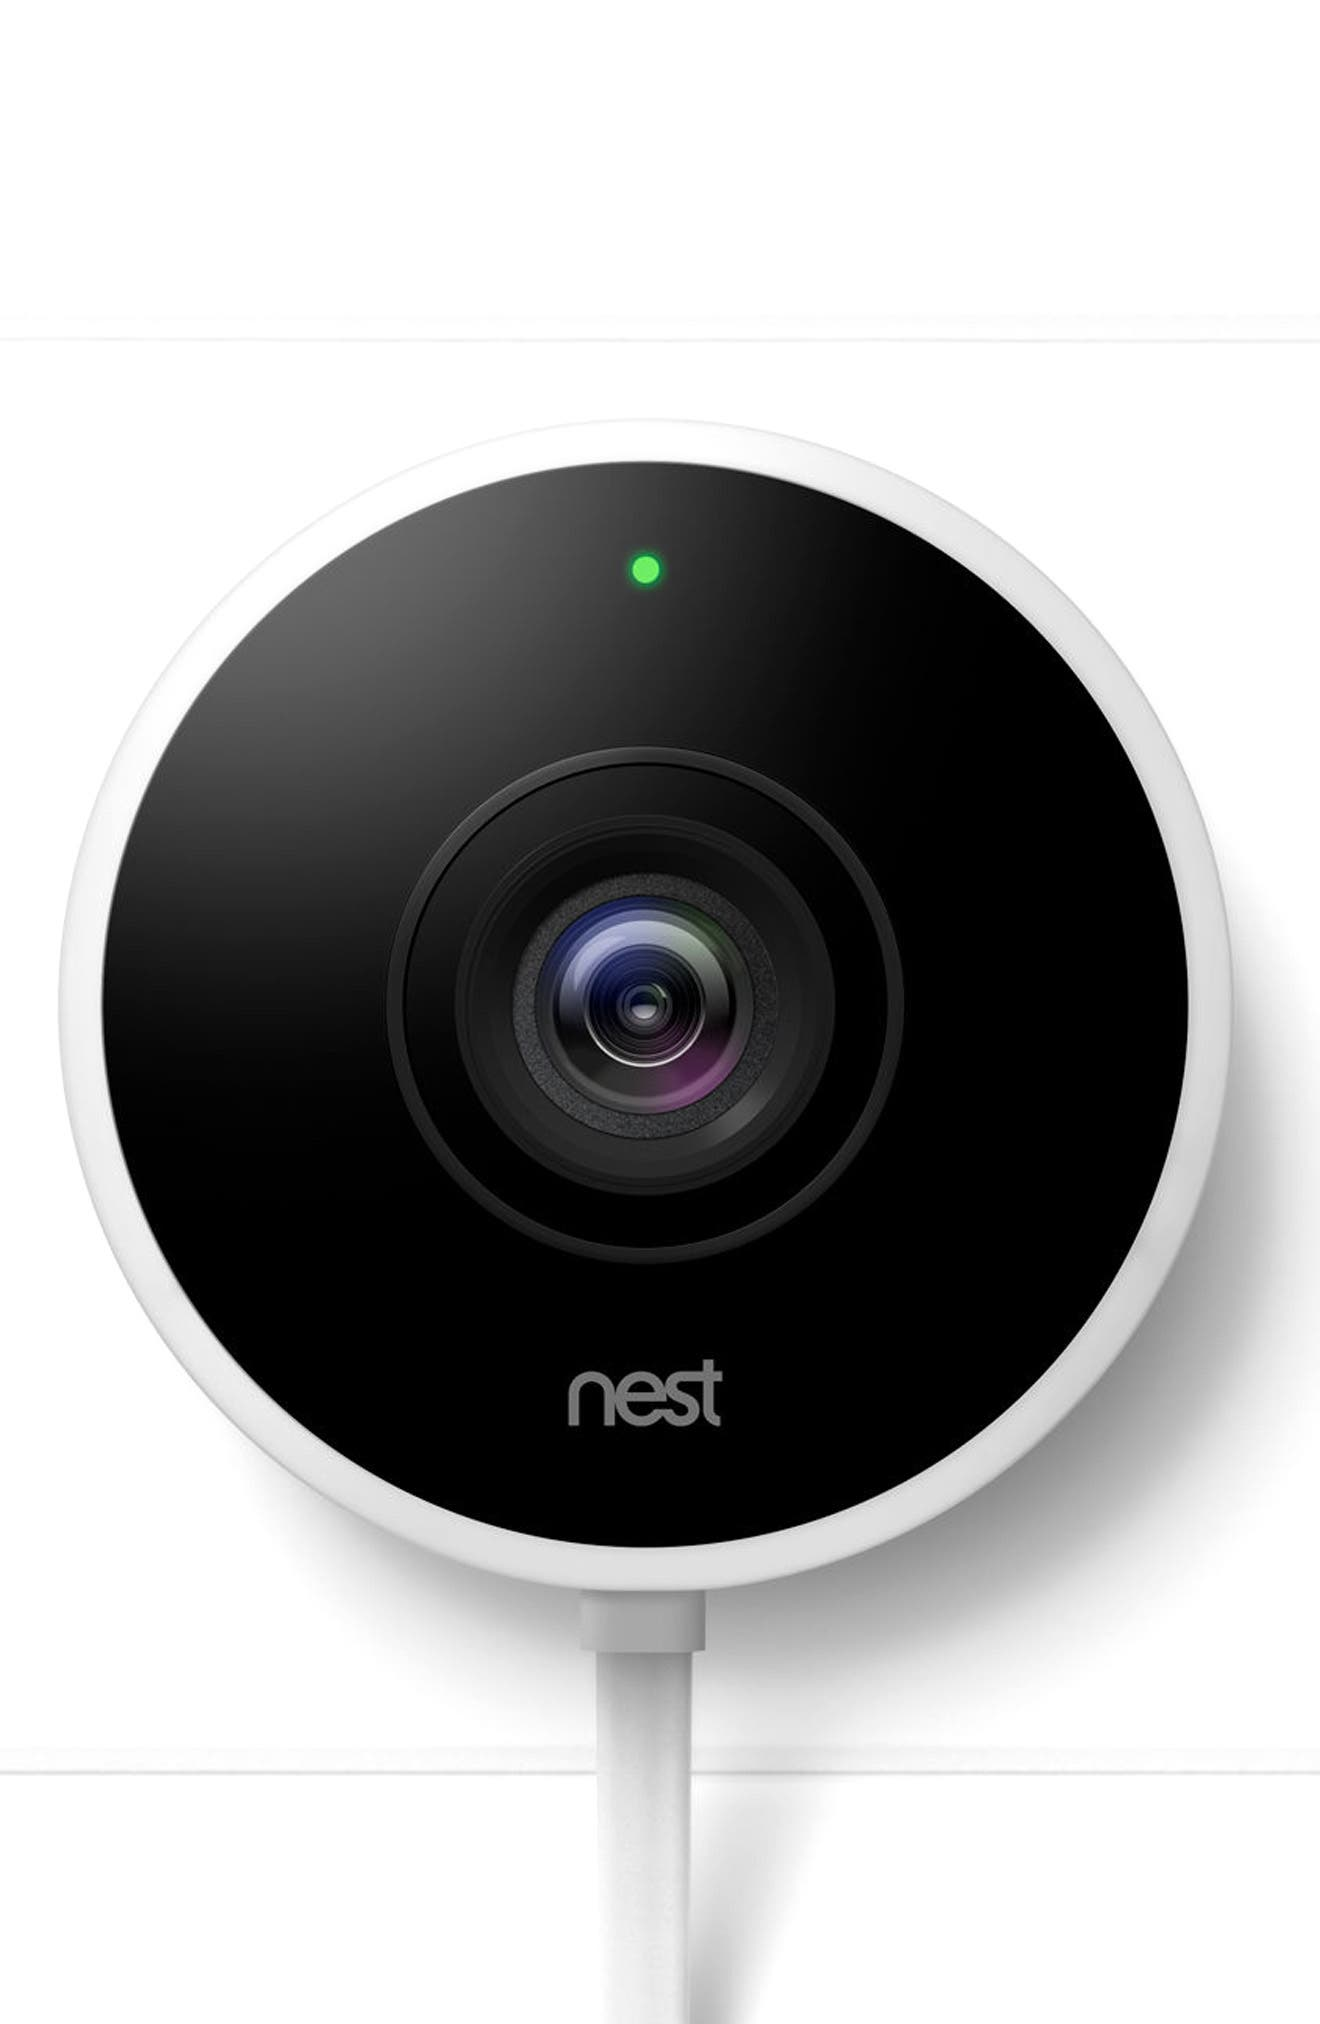 NEST,                             Outdoor Security Camera,                             Alternate thumbnail 5, color,                             100